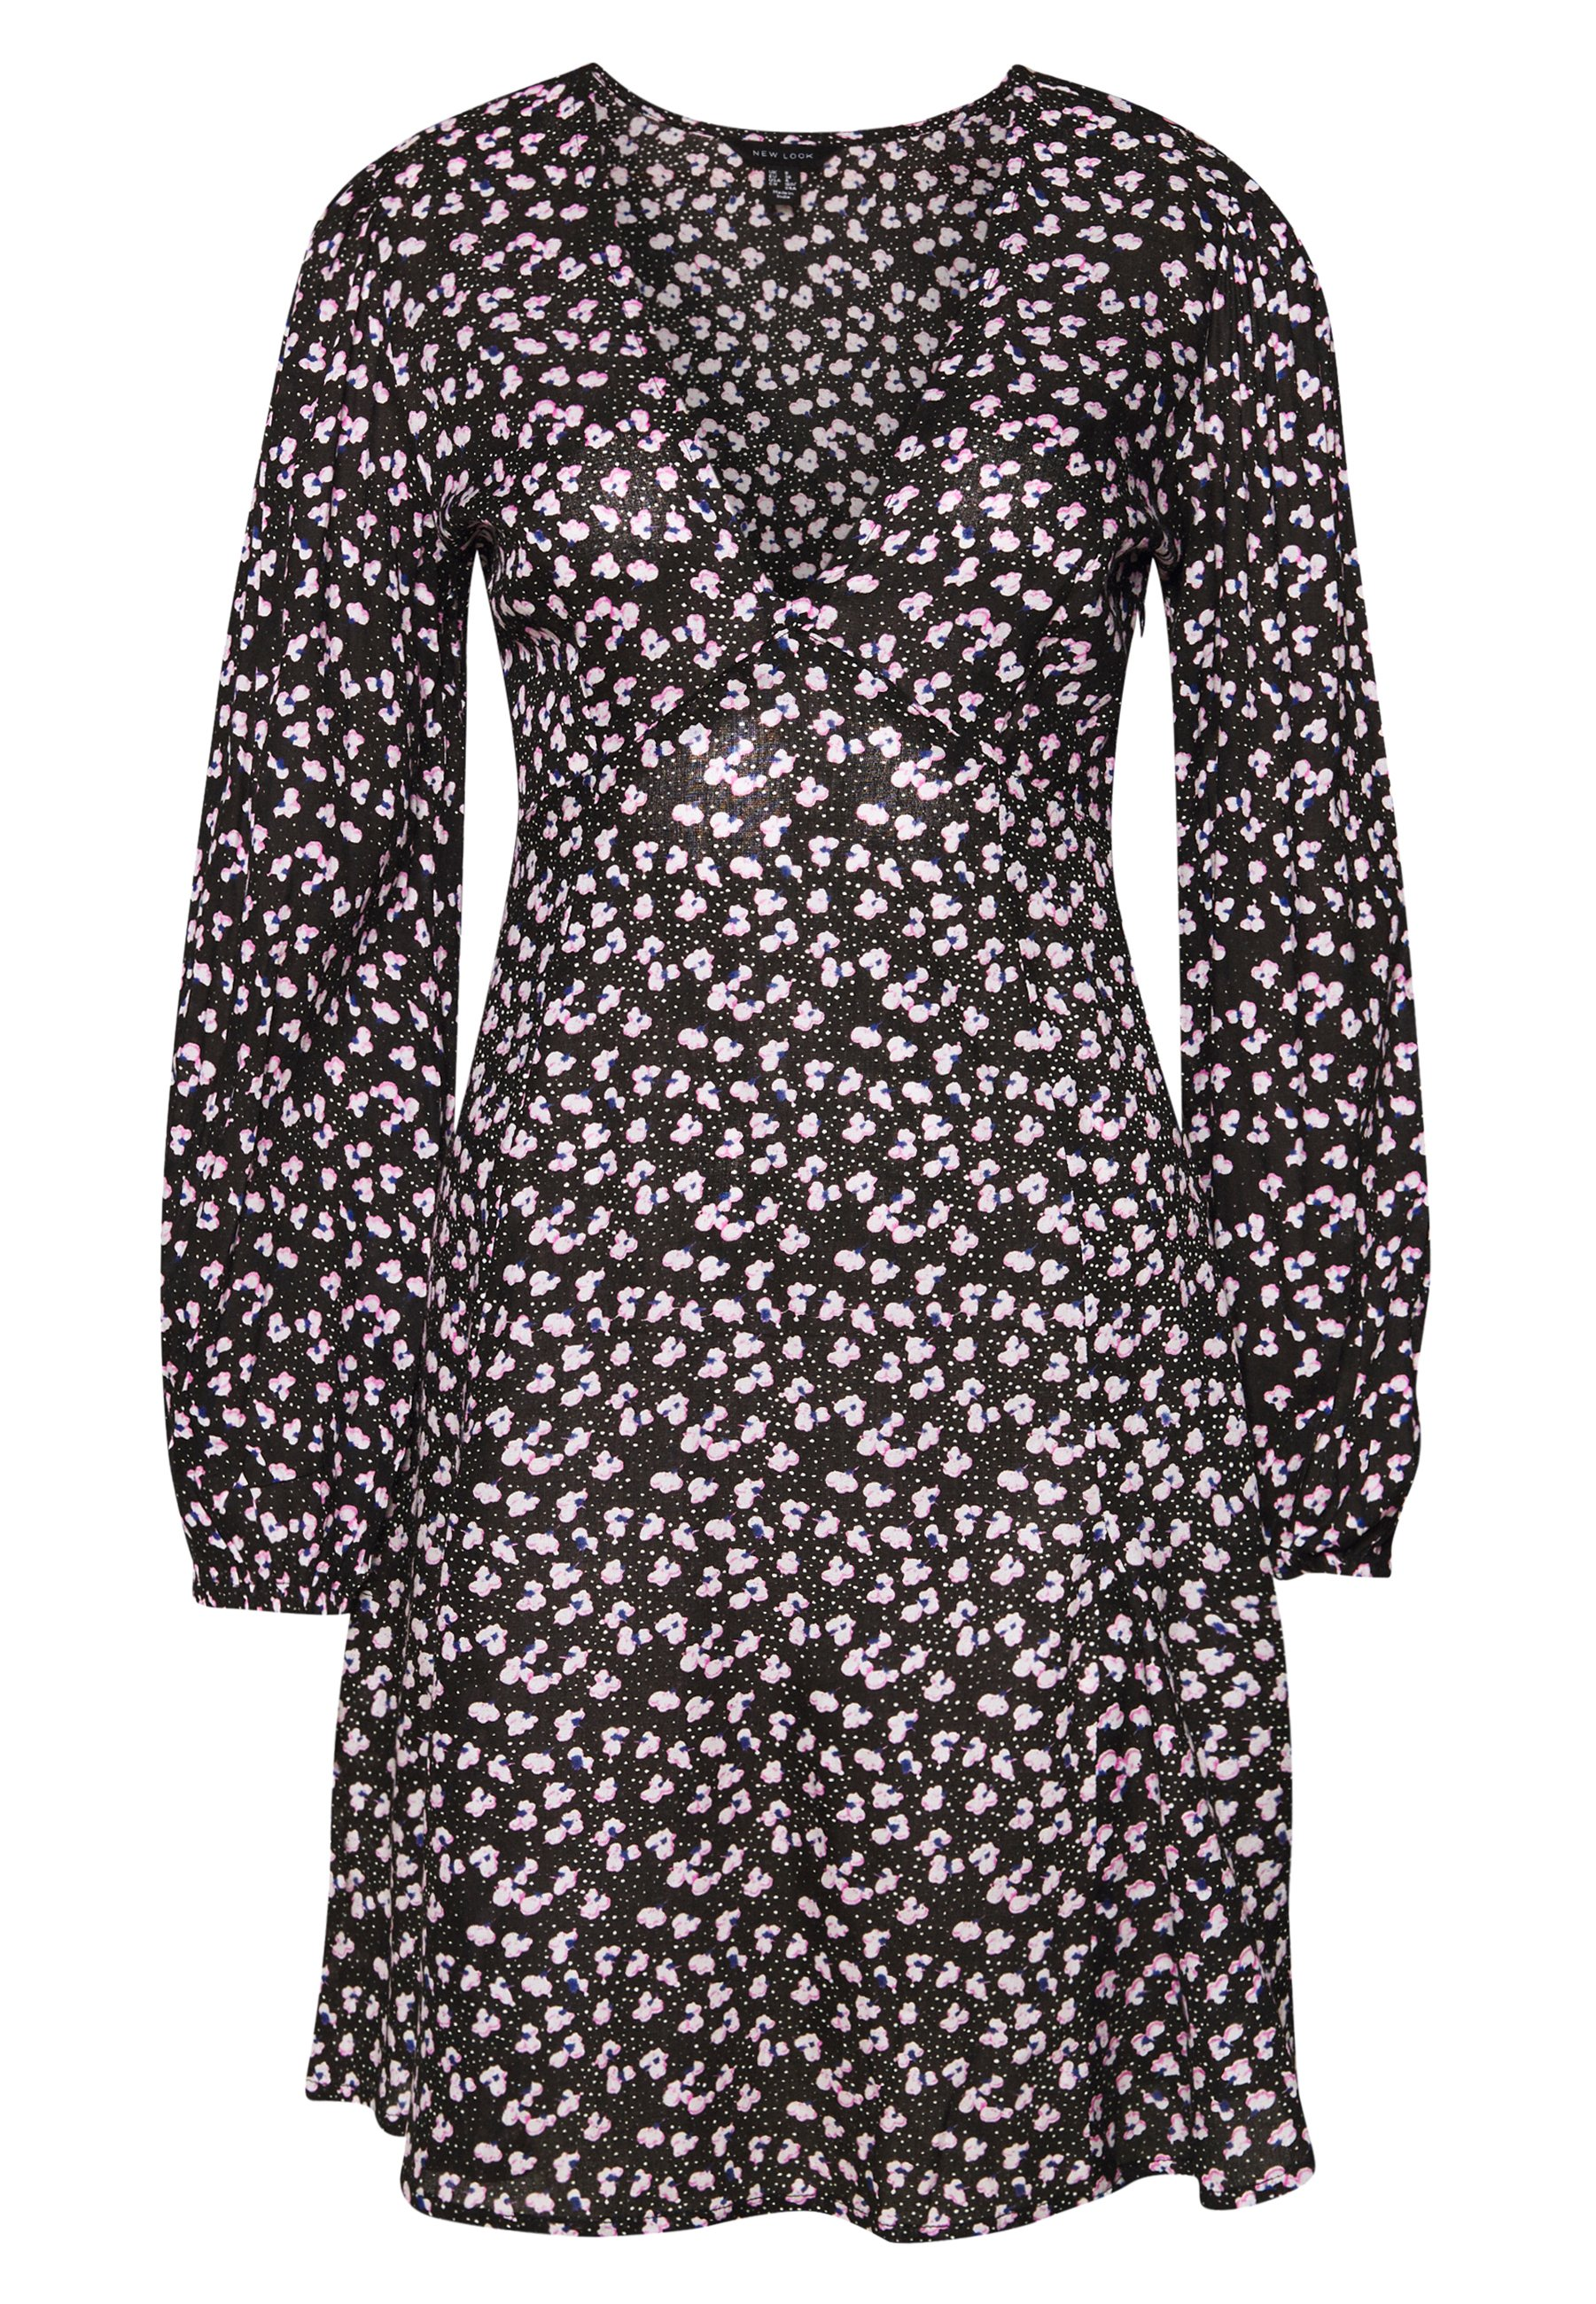 New Look Tall Black Floral High Neck Soft Touch Ruffle Dress